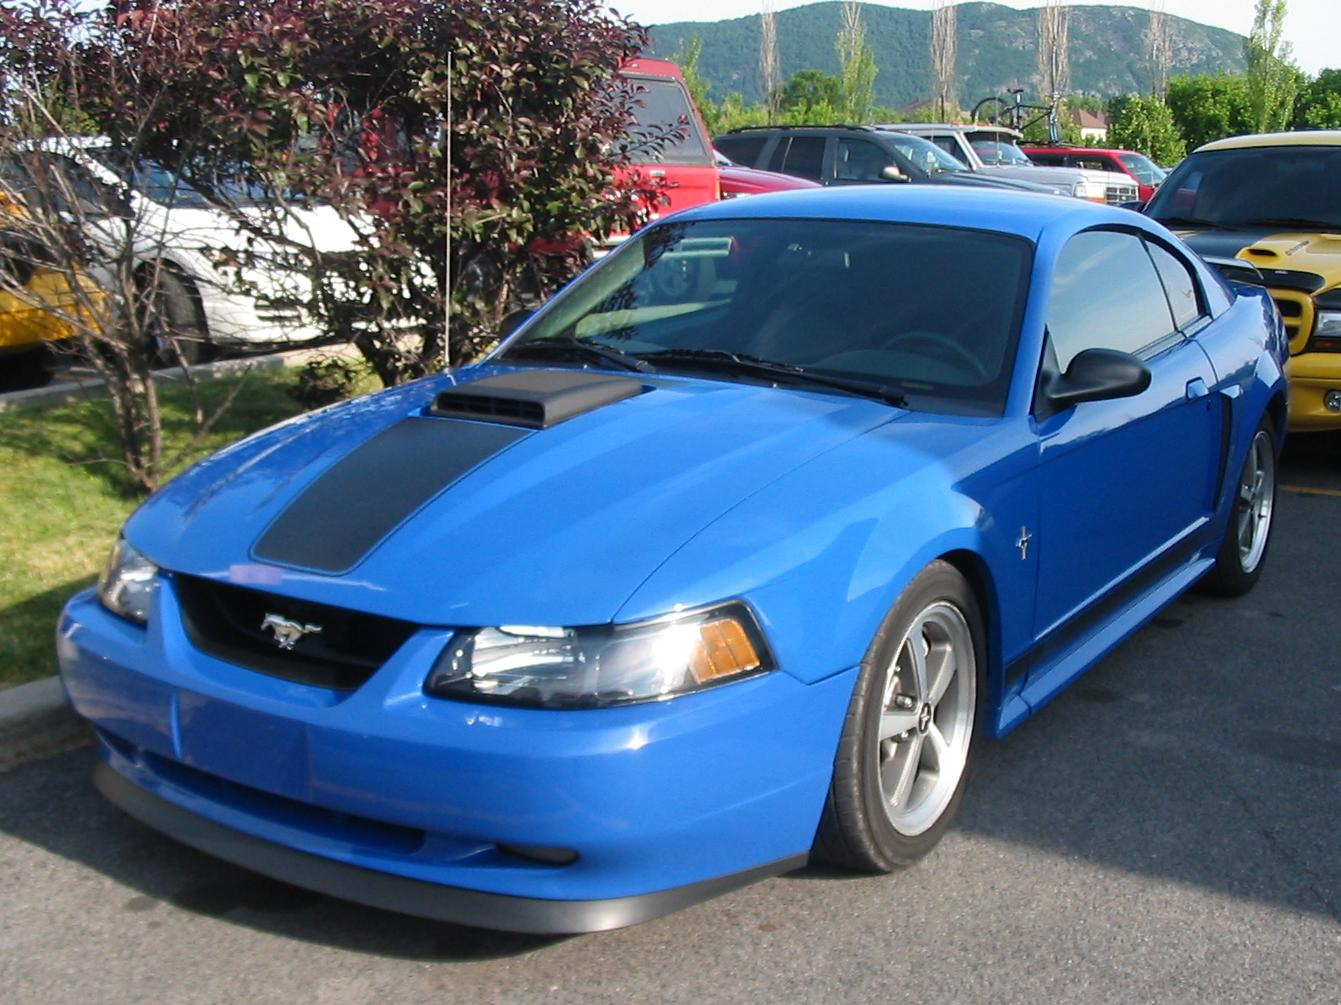 File:Ford SN-95 Mustang.jpg - Wikimedia Commons